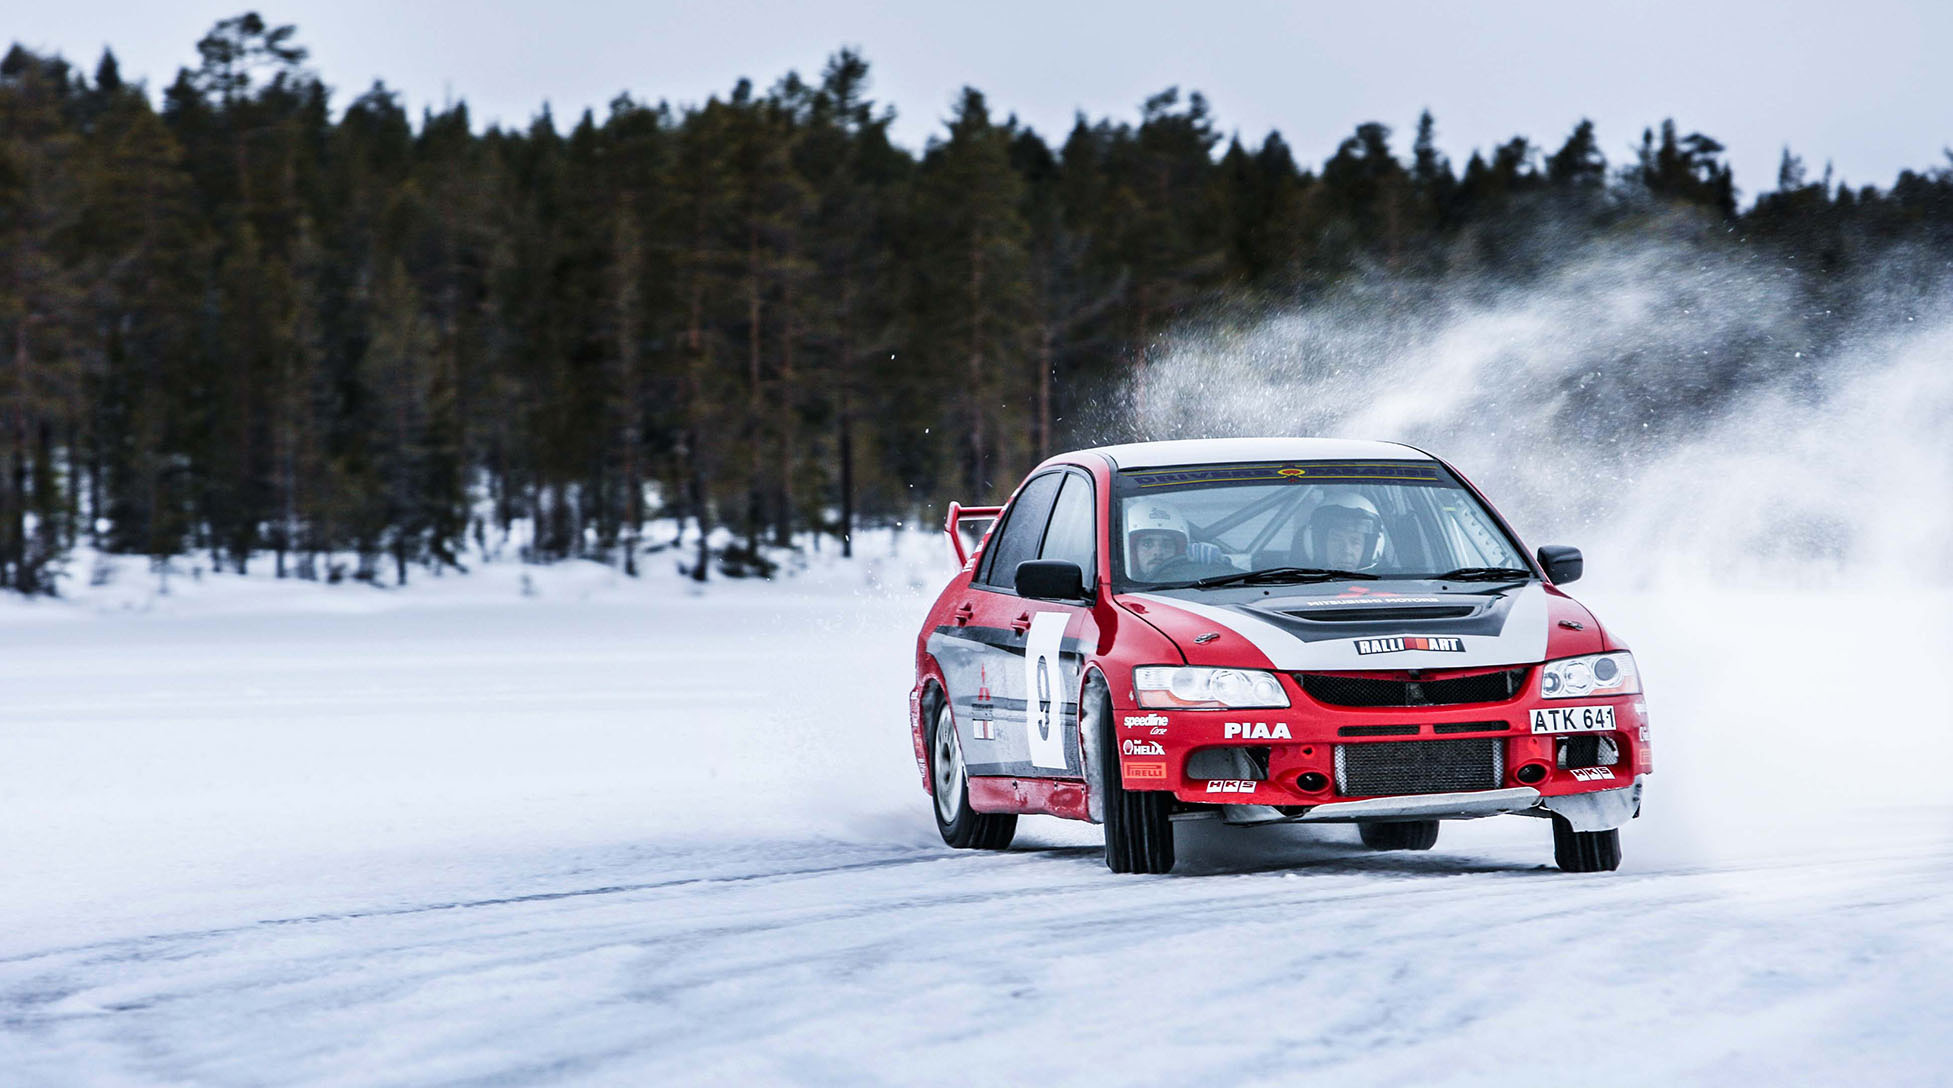 Audi Driving Experience >> Ice driving in the arctic circle, Jokkmokk, Sweden